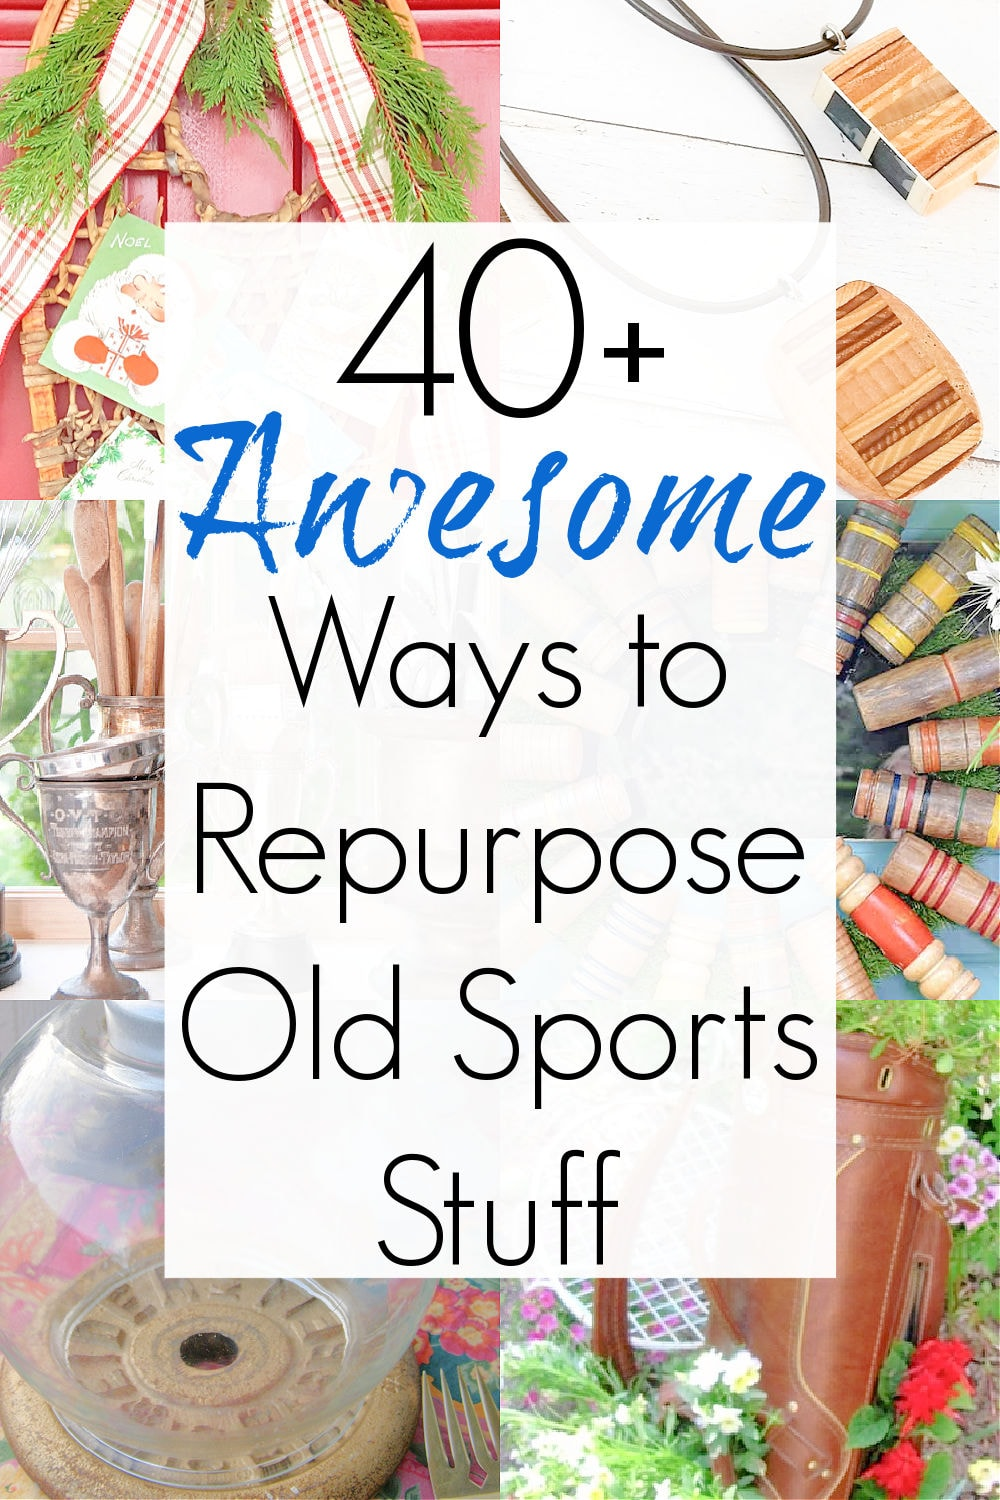 Repurposed projects for used sporting goods and sports stuff